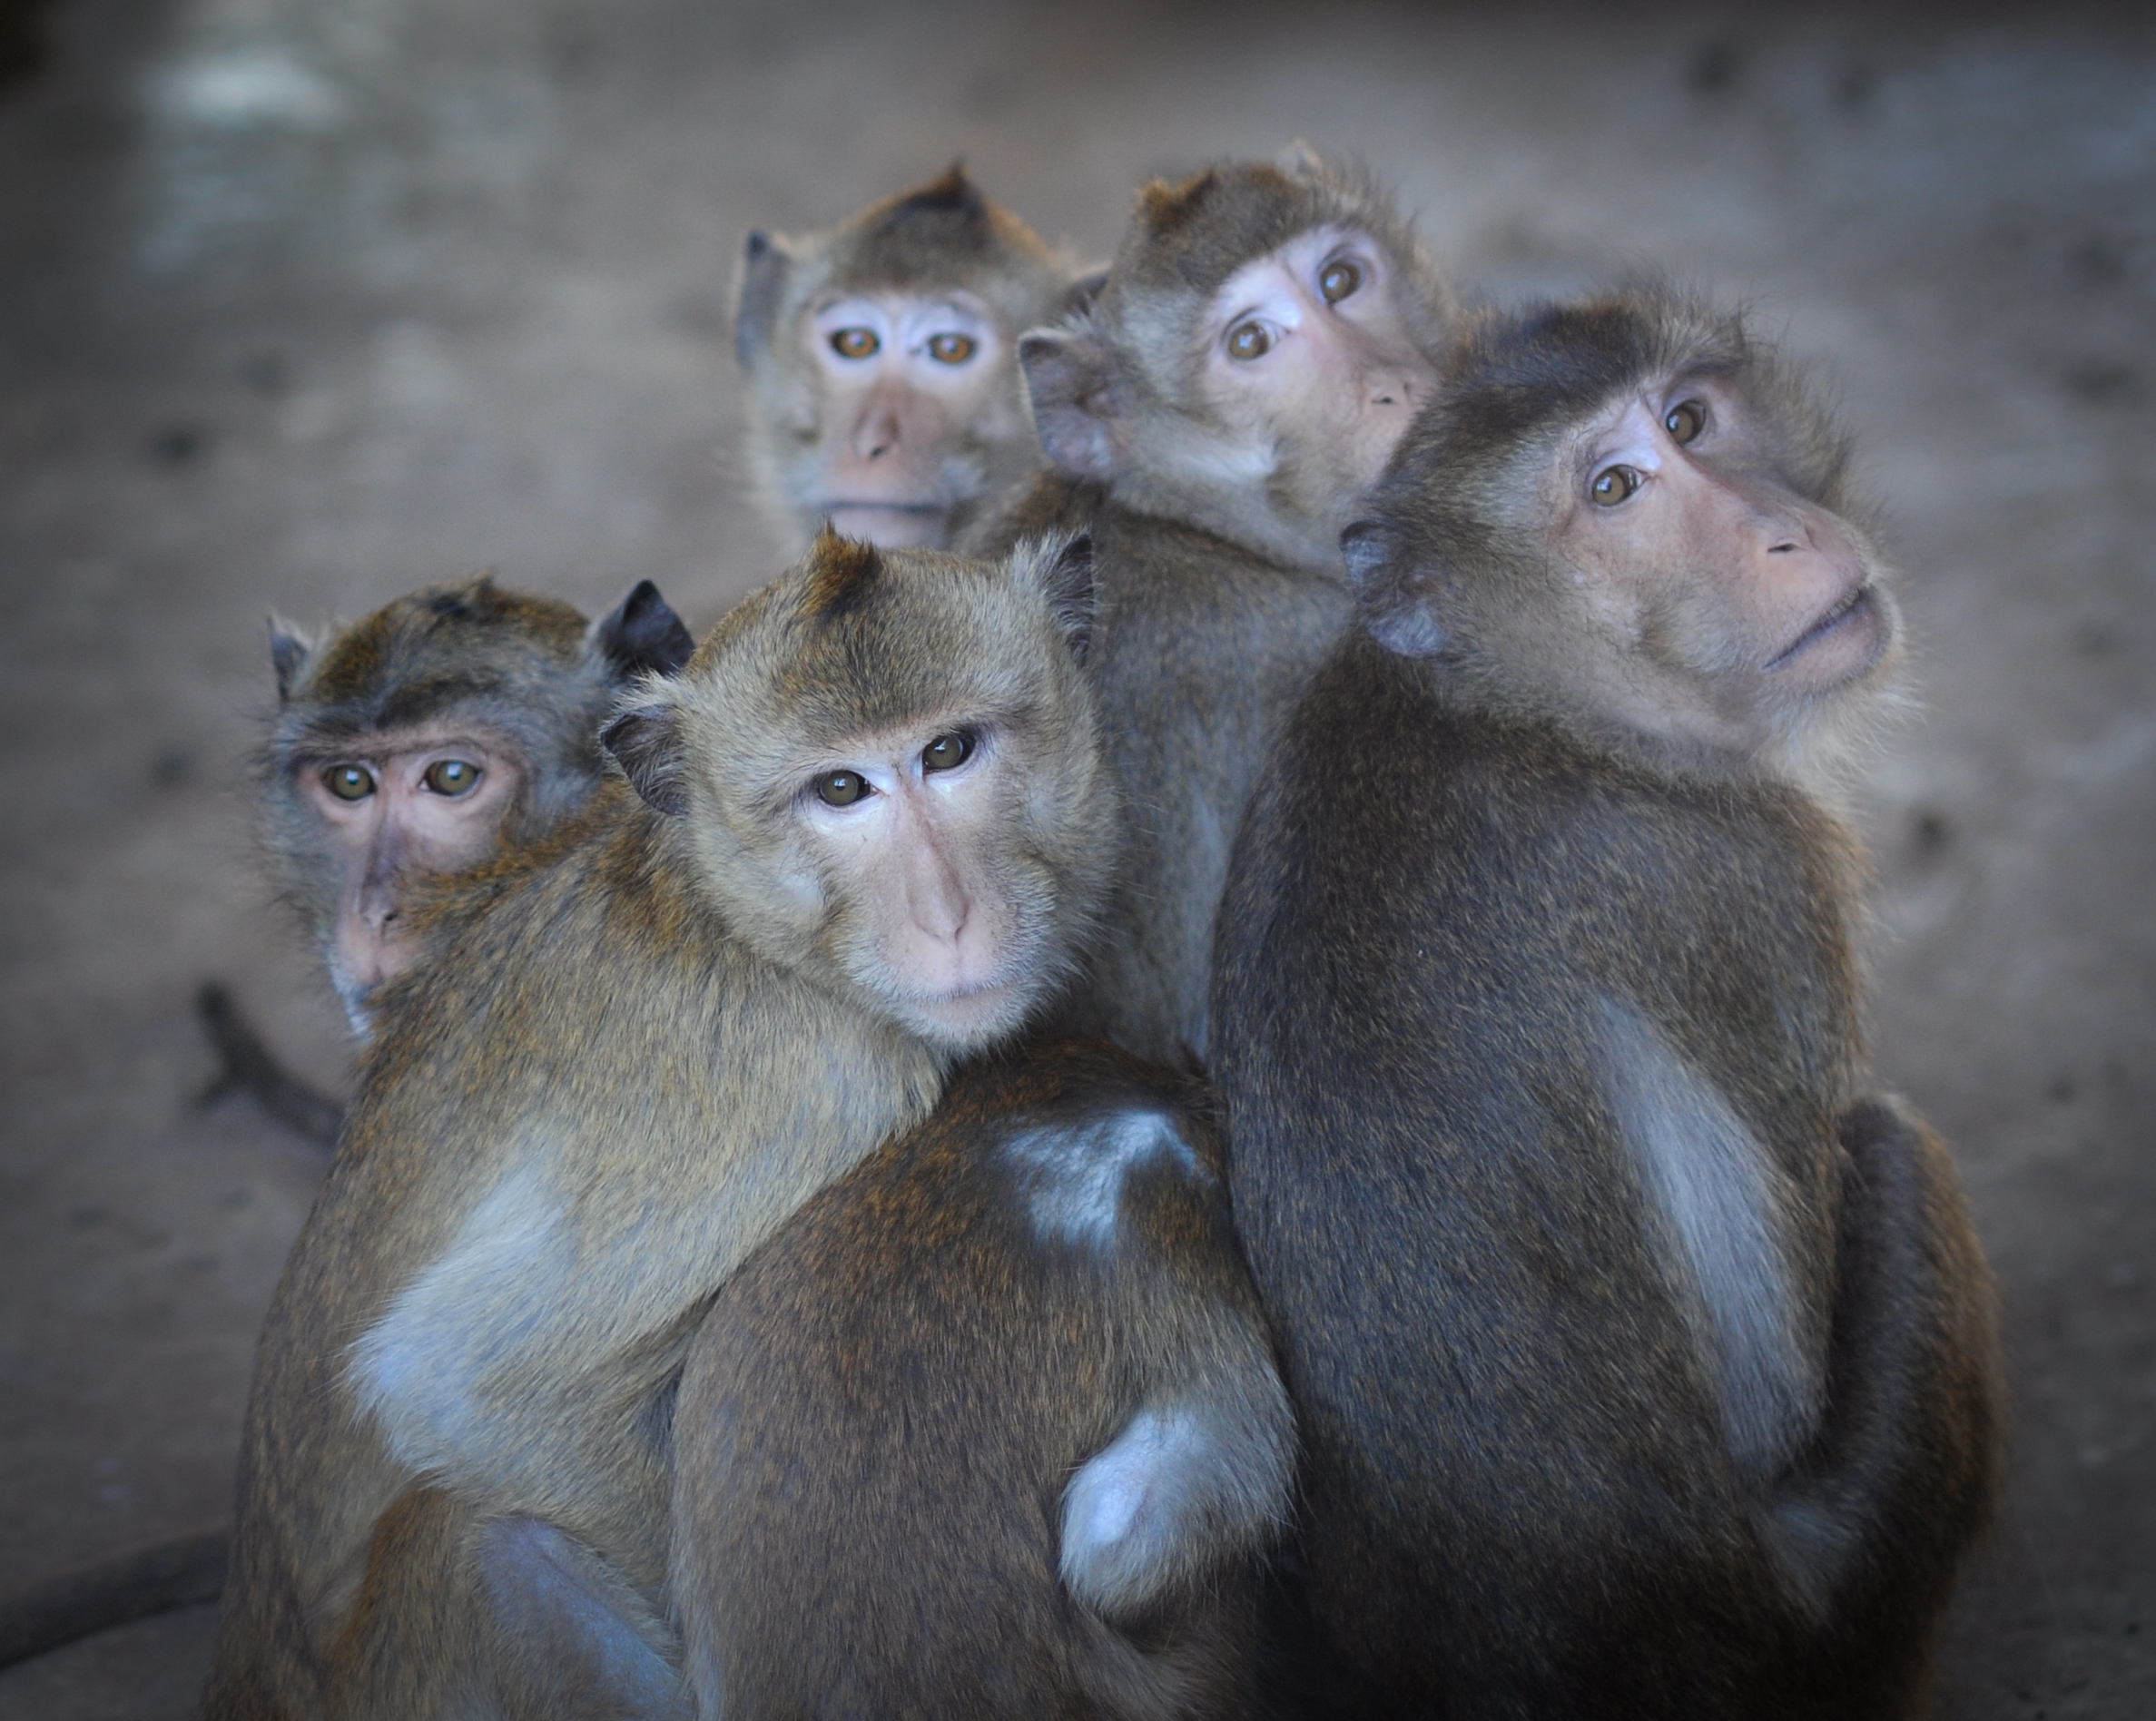 Long-tailed macaques at a breeding farm; photo credit Jo-Anne McArthur / We Animals